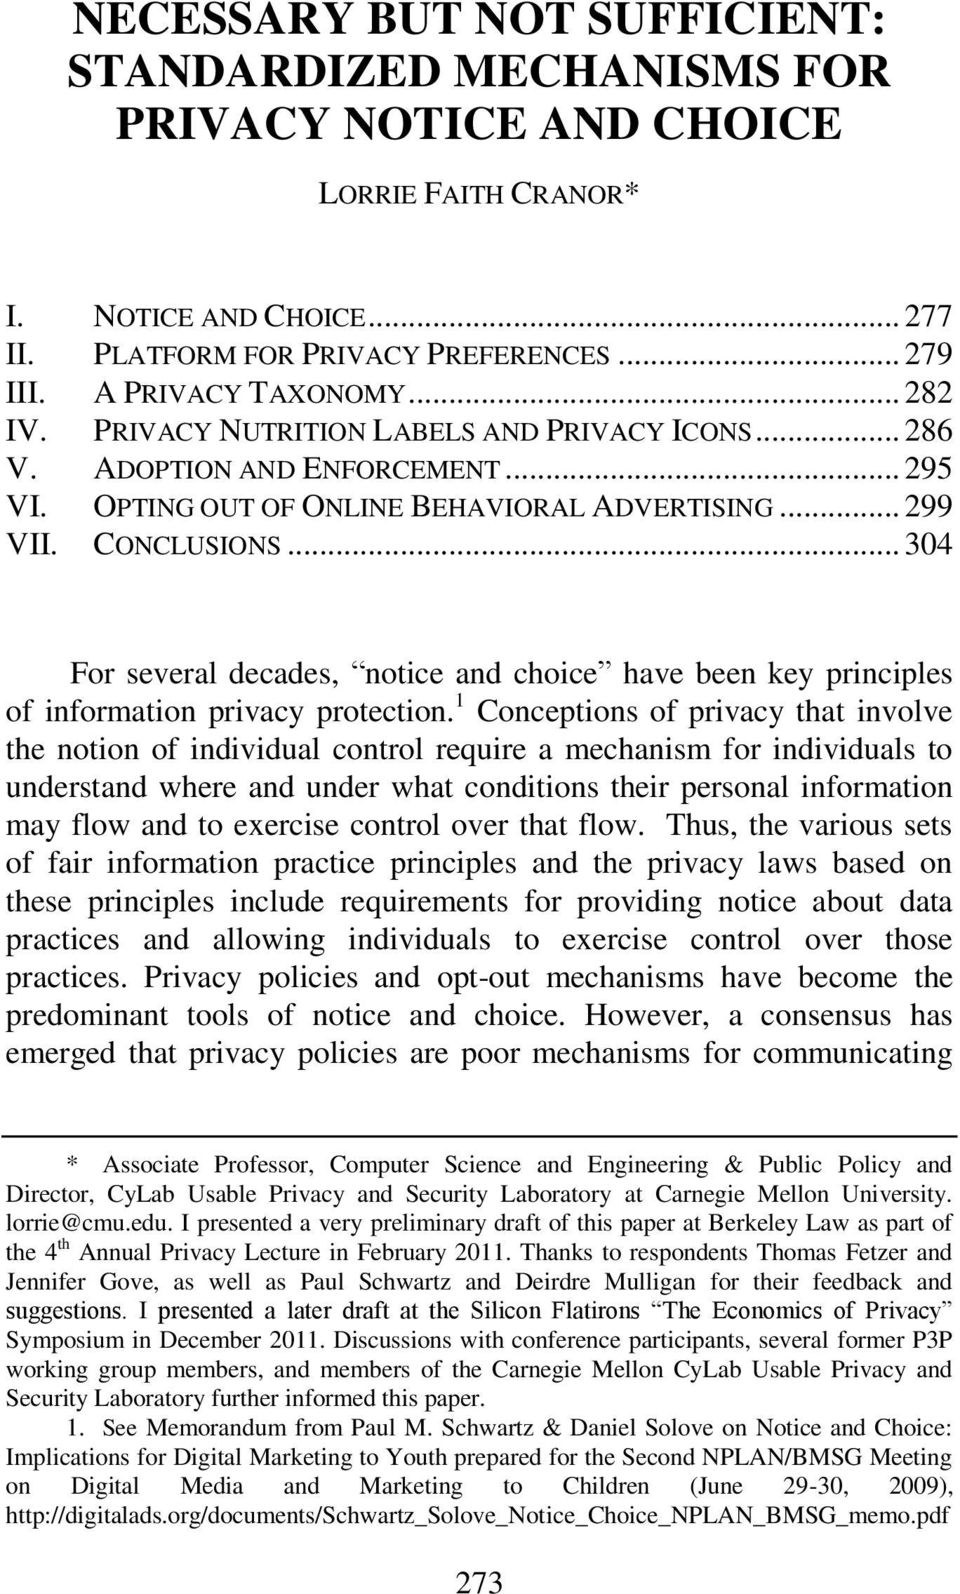 .. 304 For several decades, notice and choice have been key principles of information privacy protection.